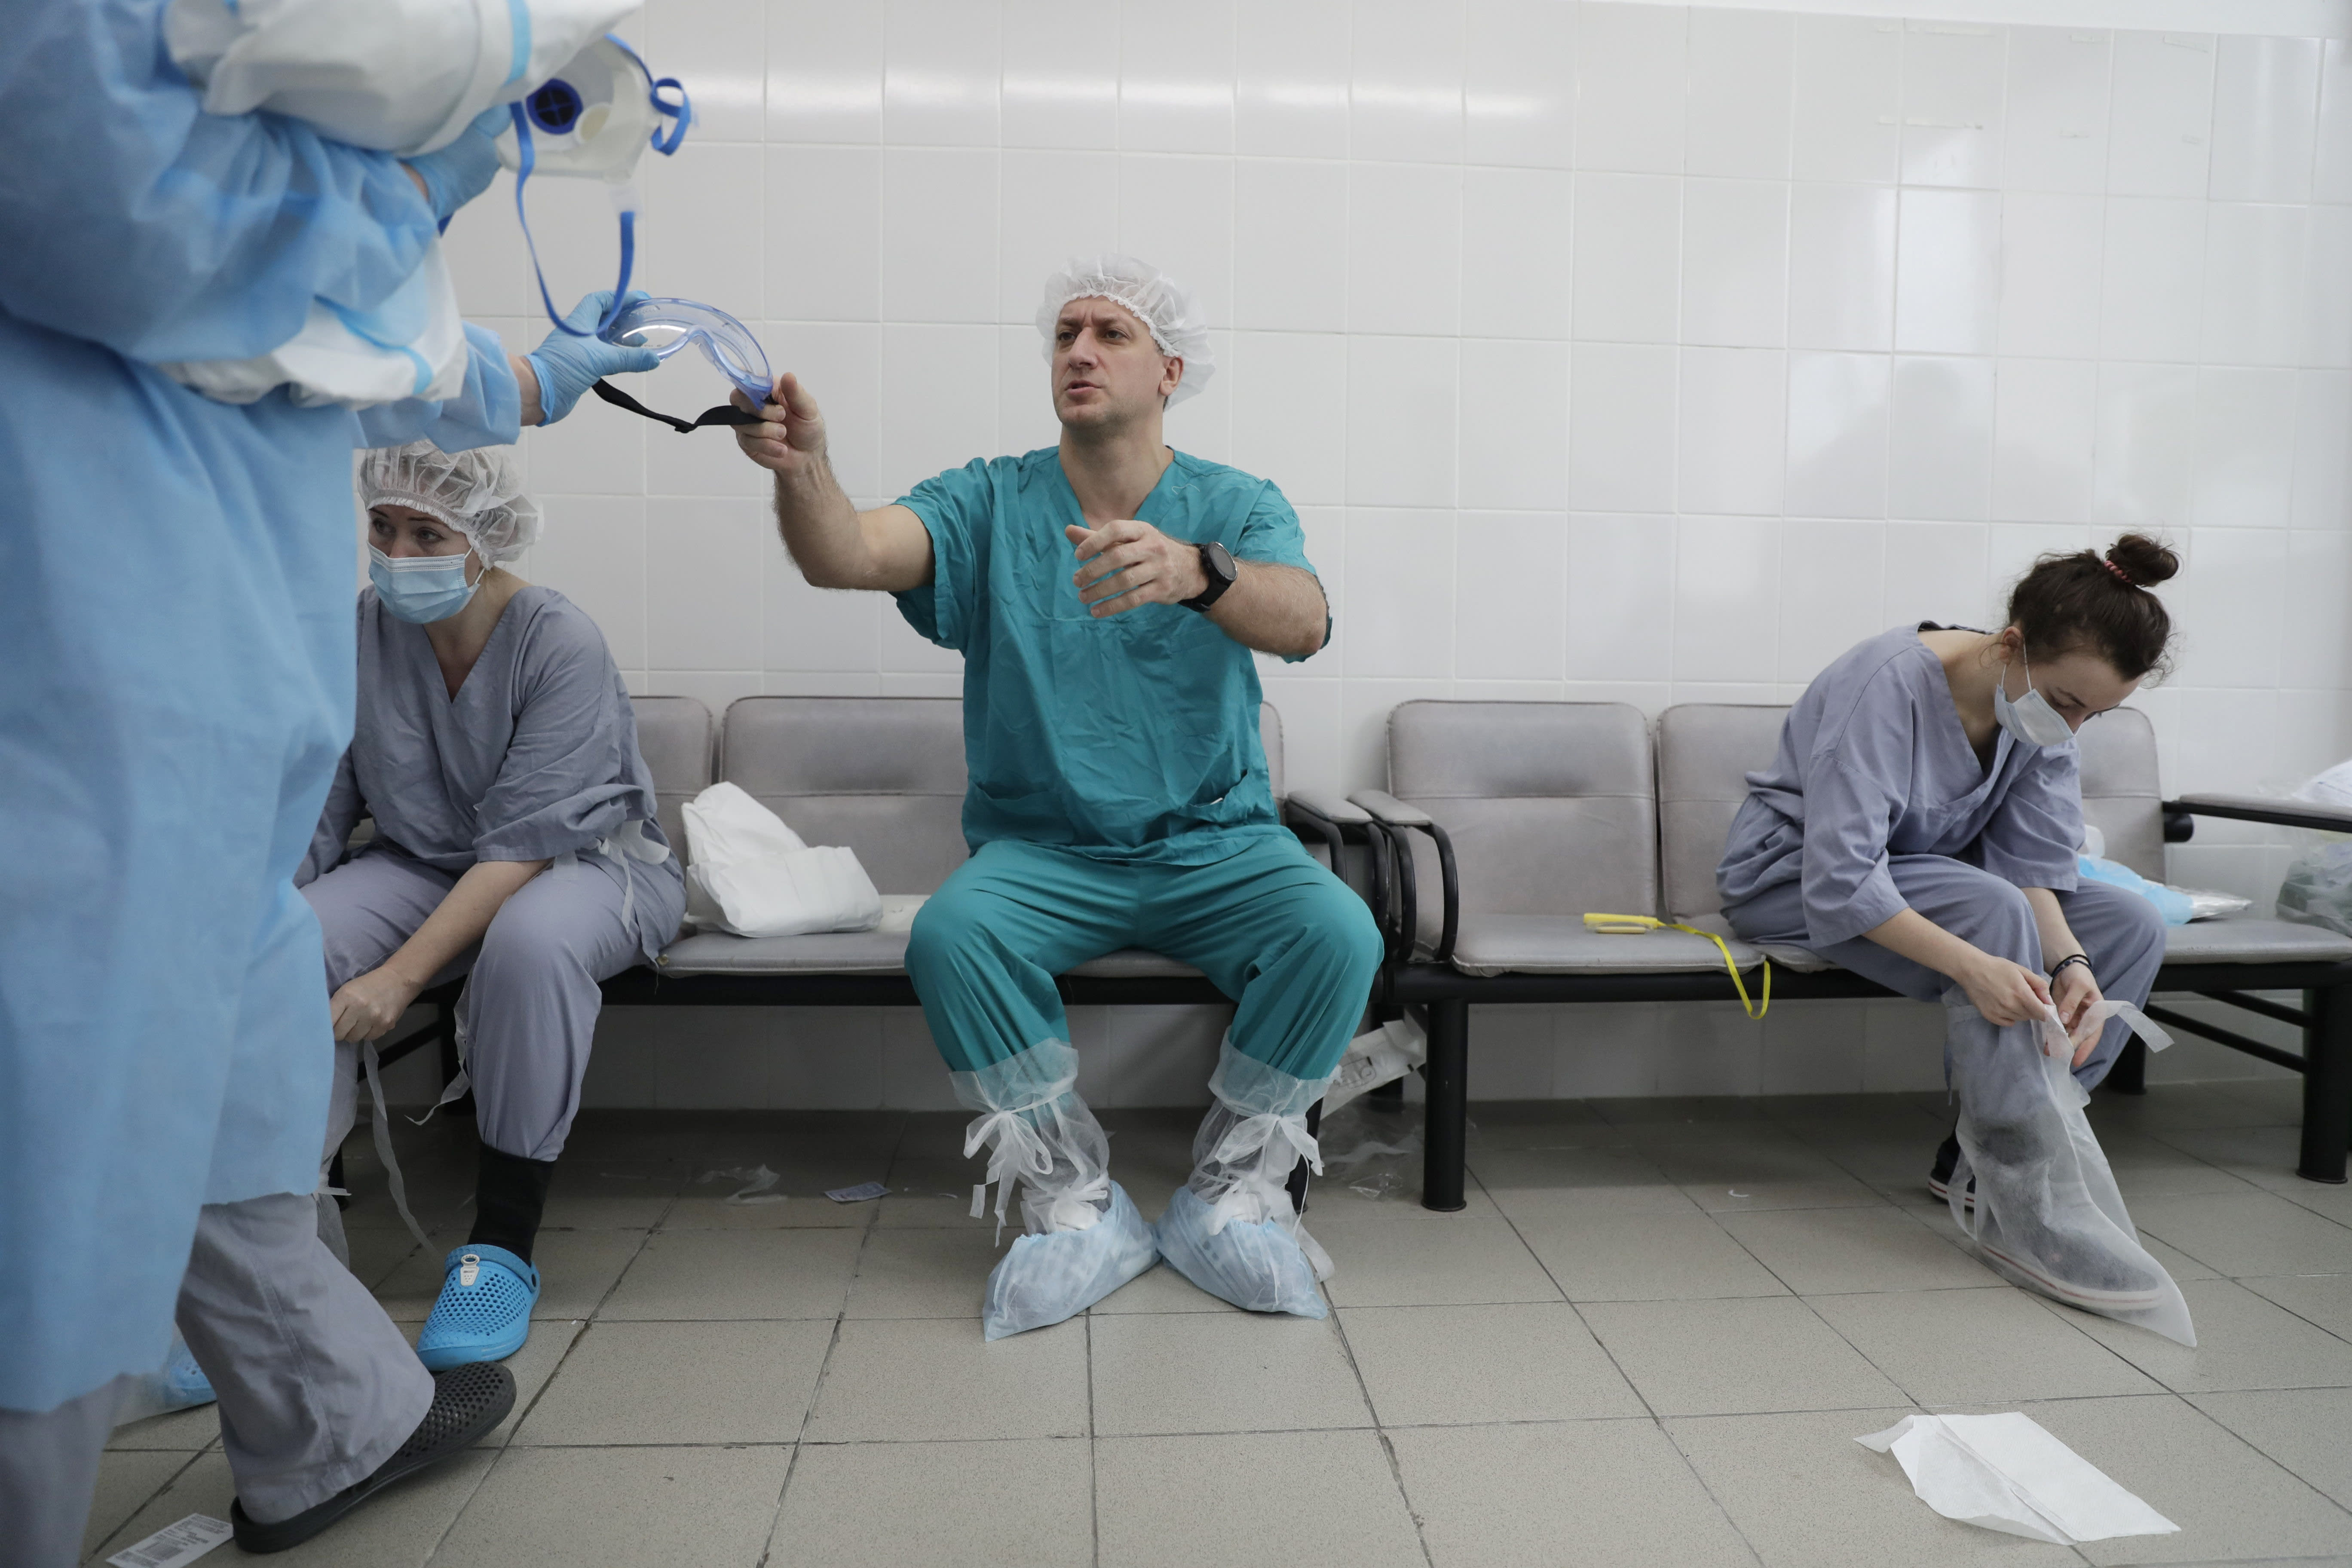 In this photo taken on Friday, May 15, 2020, Dr. Osman Osmanov, center, puts on protective gear before his shift at an intensive care unit of the Filatov City Clinical Hospital in Moscow, Russia. Moscow accounts for about half of all of Russia's coronavirus cases, a deluge that strains the city's hospitals and has forced Osmanov to to work every day for the past two months, sometimes for 24 hours in a row. (AP Photo/Pavel Golovkin)